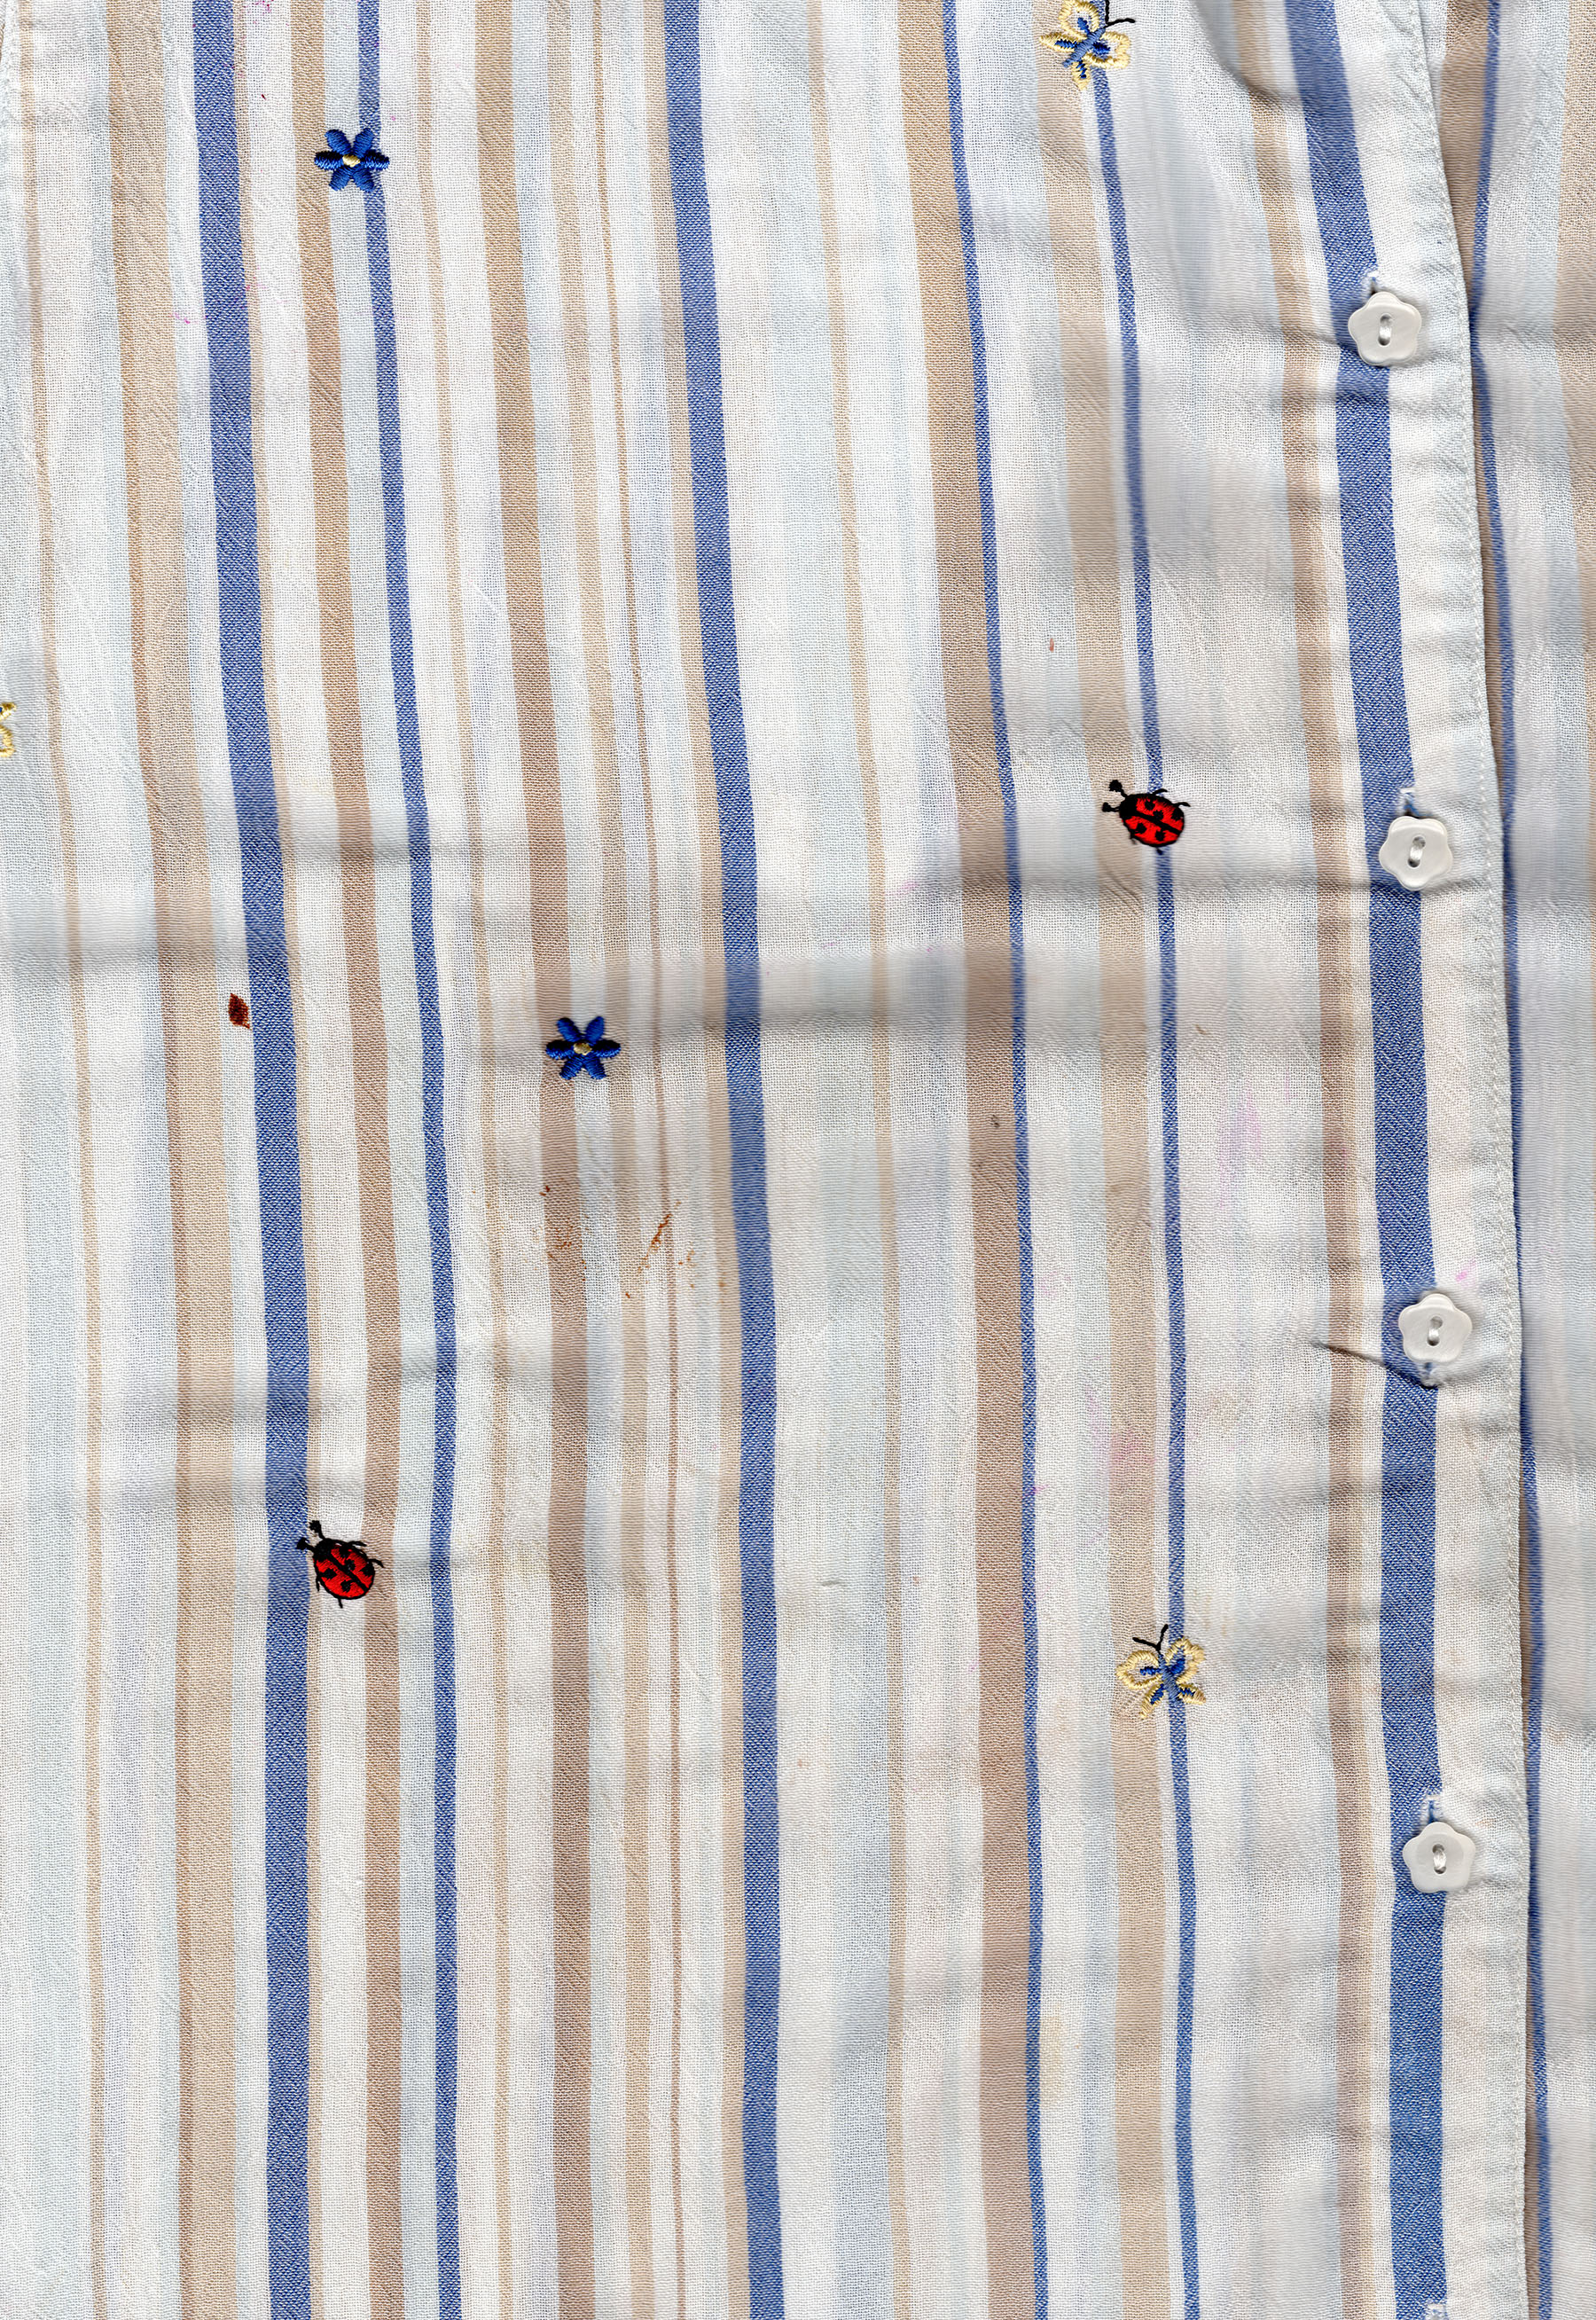 Stained Shirt No. 3